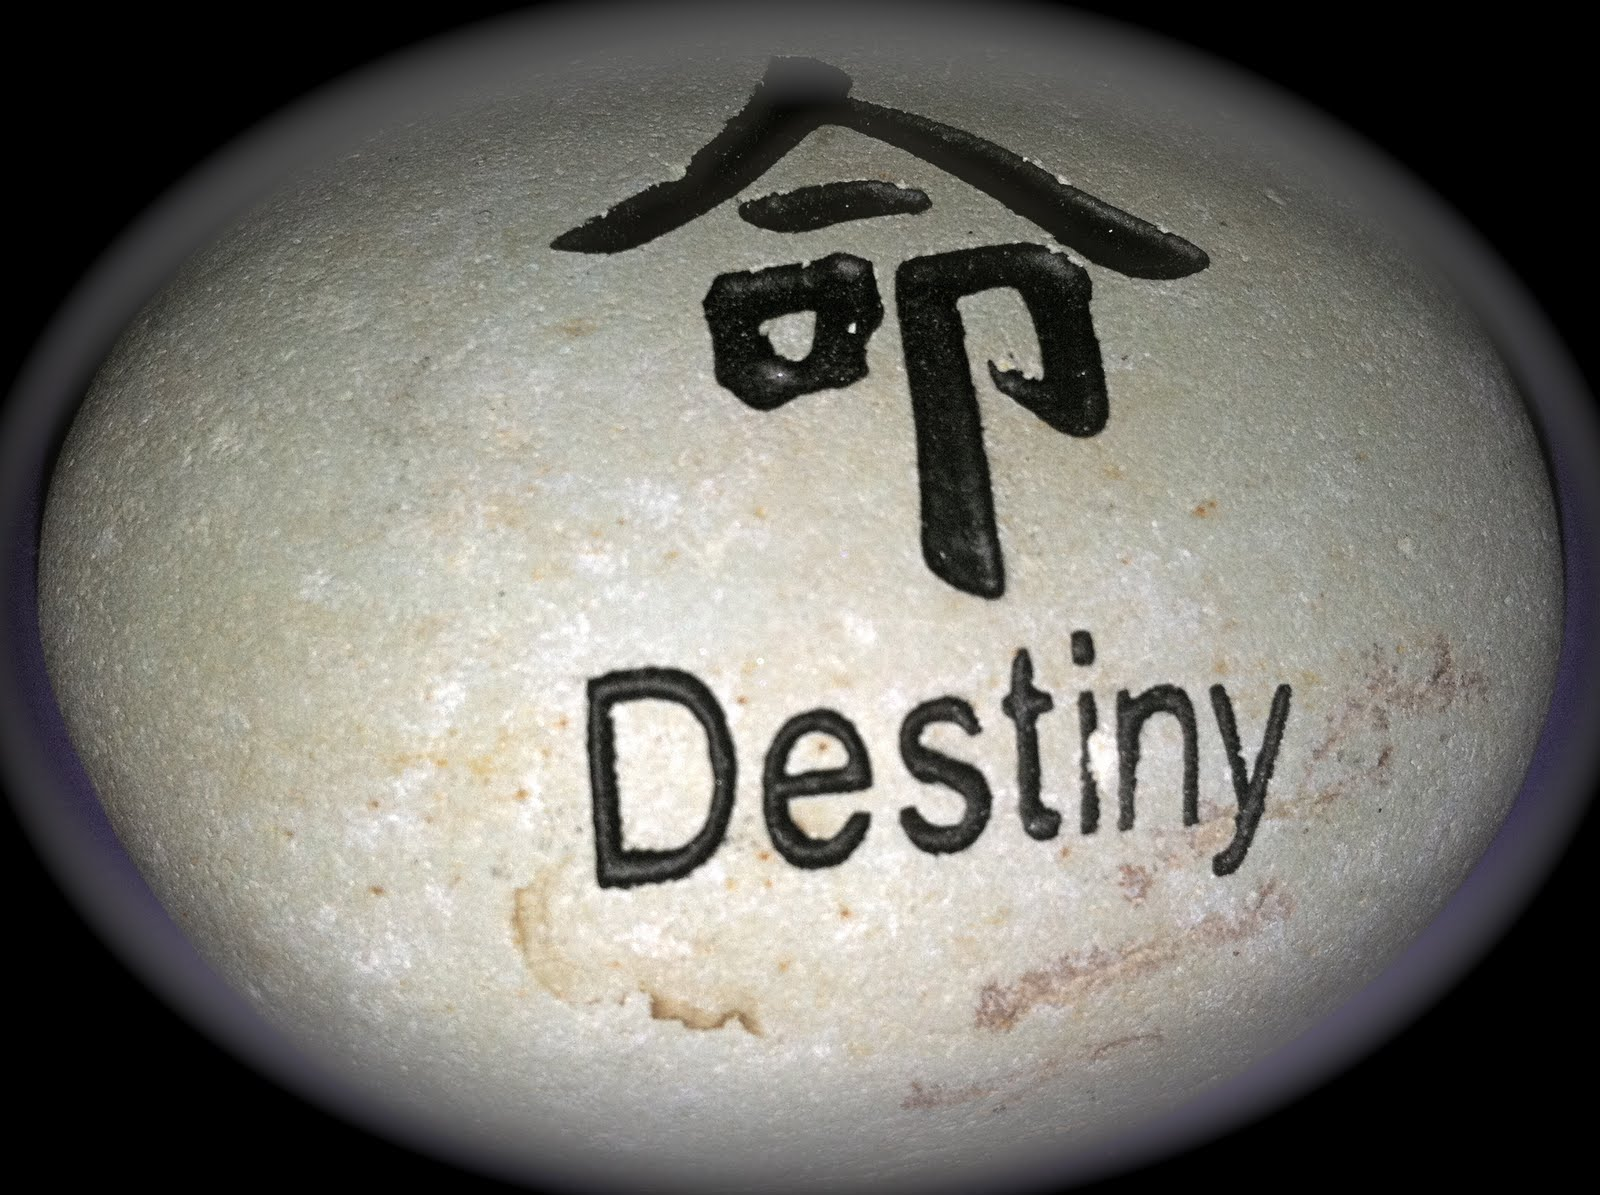 Destiny Healing Rock